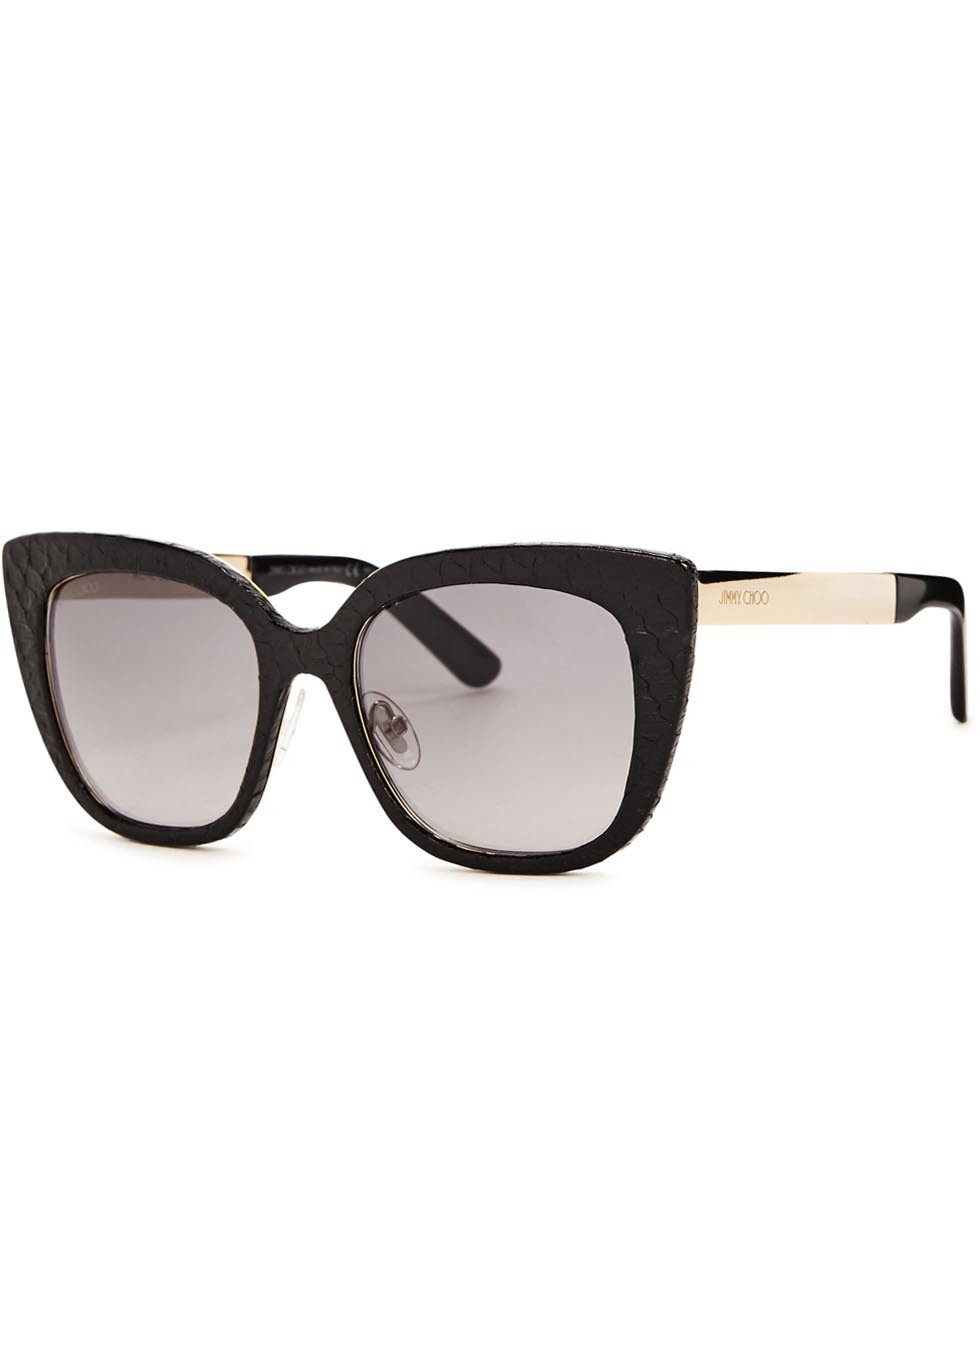 Nita Snake Effect Leather Cat Eye Sunglasses - predominant colour: black; occasions: casual, holiday; style: cateye; size: large; material: plastic/rubber; pattern: animal print; finish: plain; season: a/w 2015; wardrobe: highlight